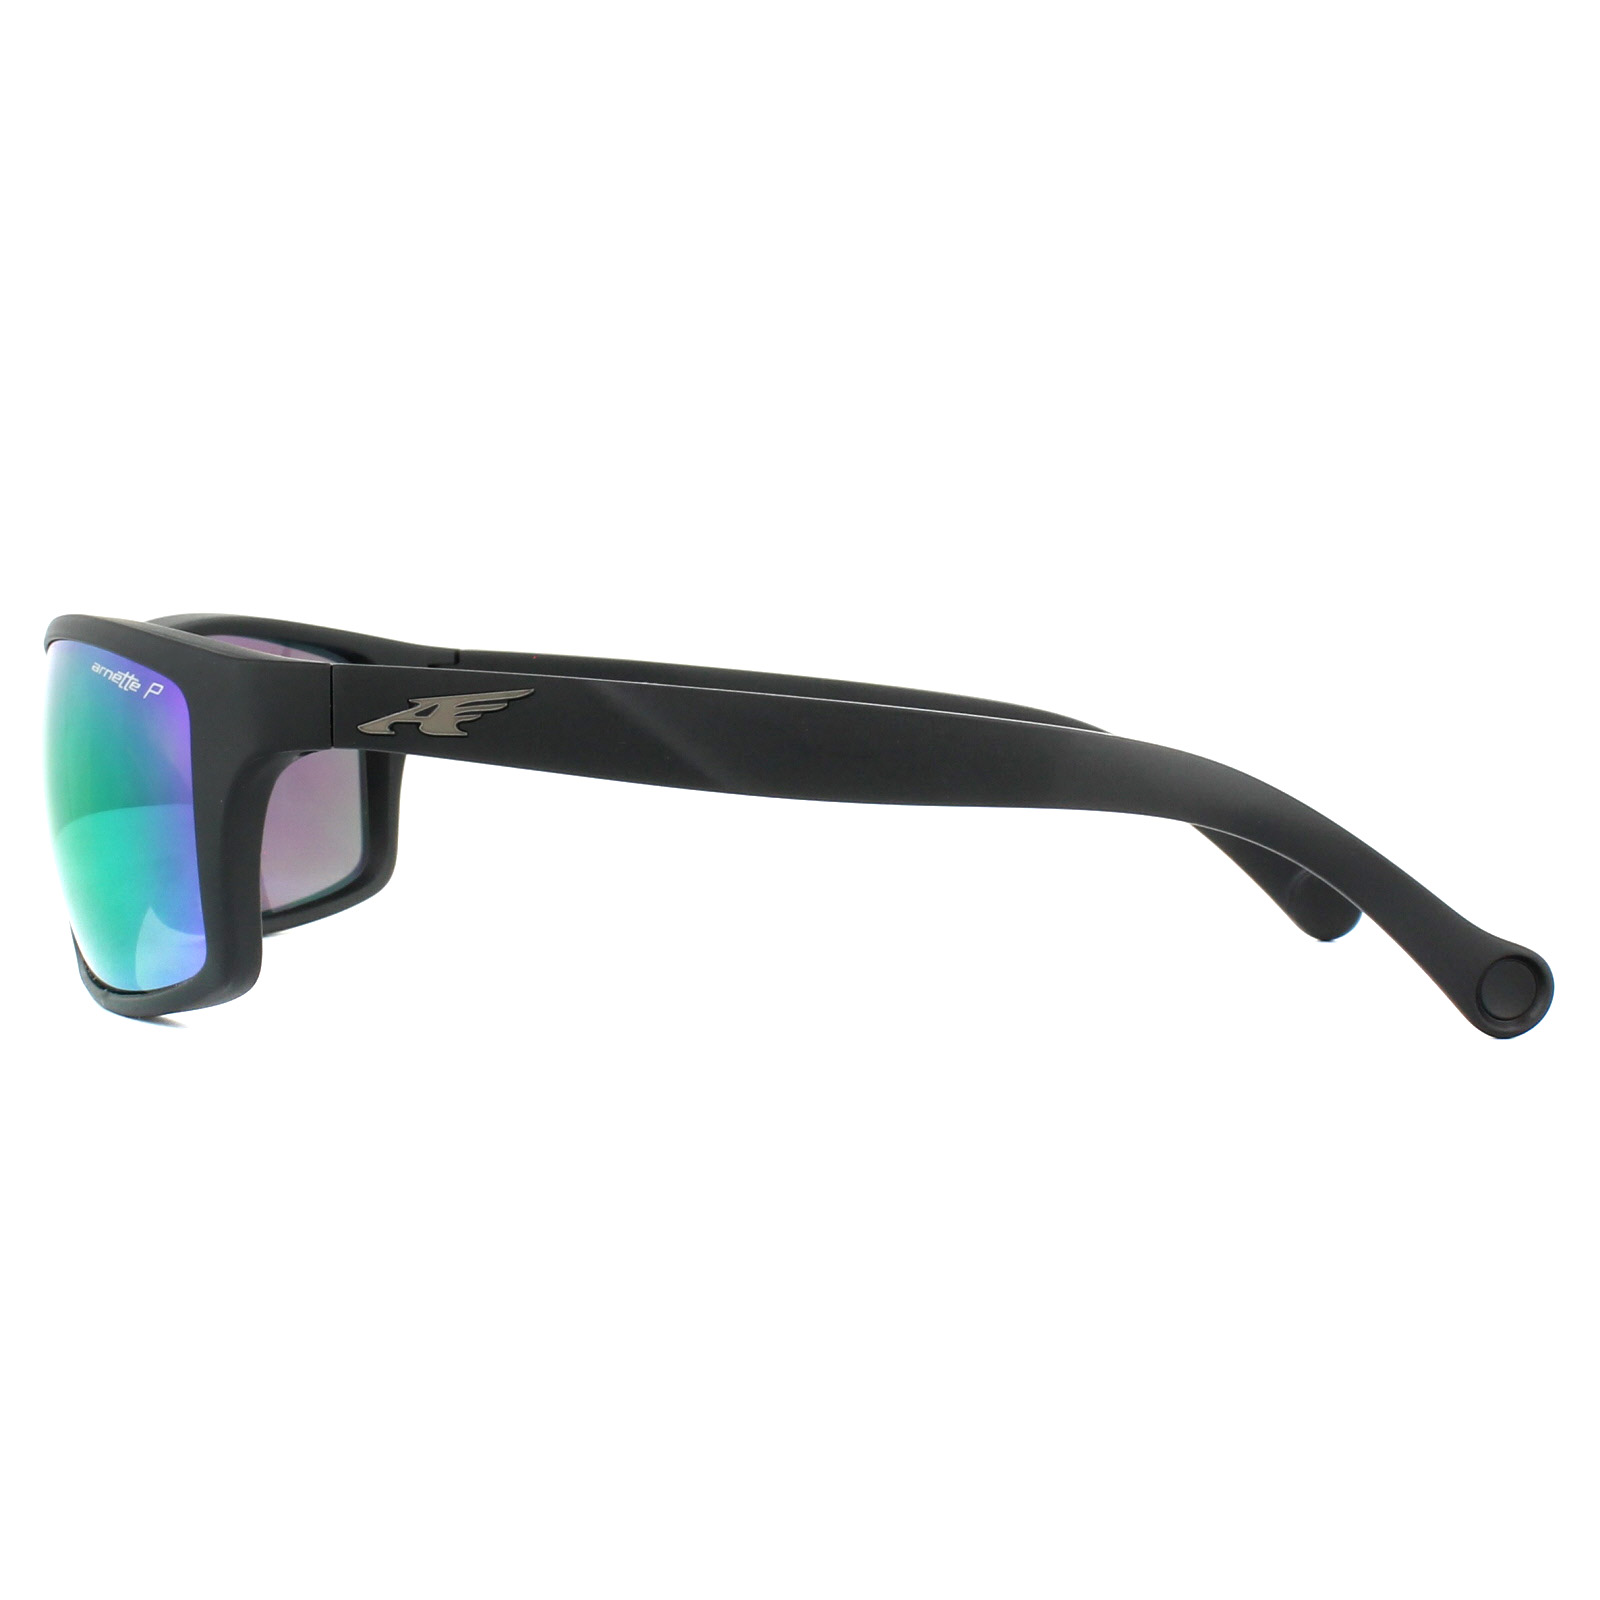 04a4970416 Sentinel Arnette Sunglasses 4207 Boiler 01 1L Matt Black Grey Mirror Green  Polarized